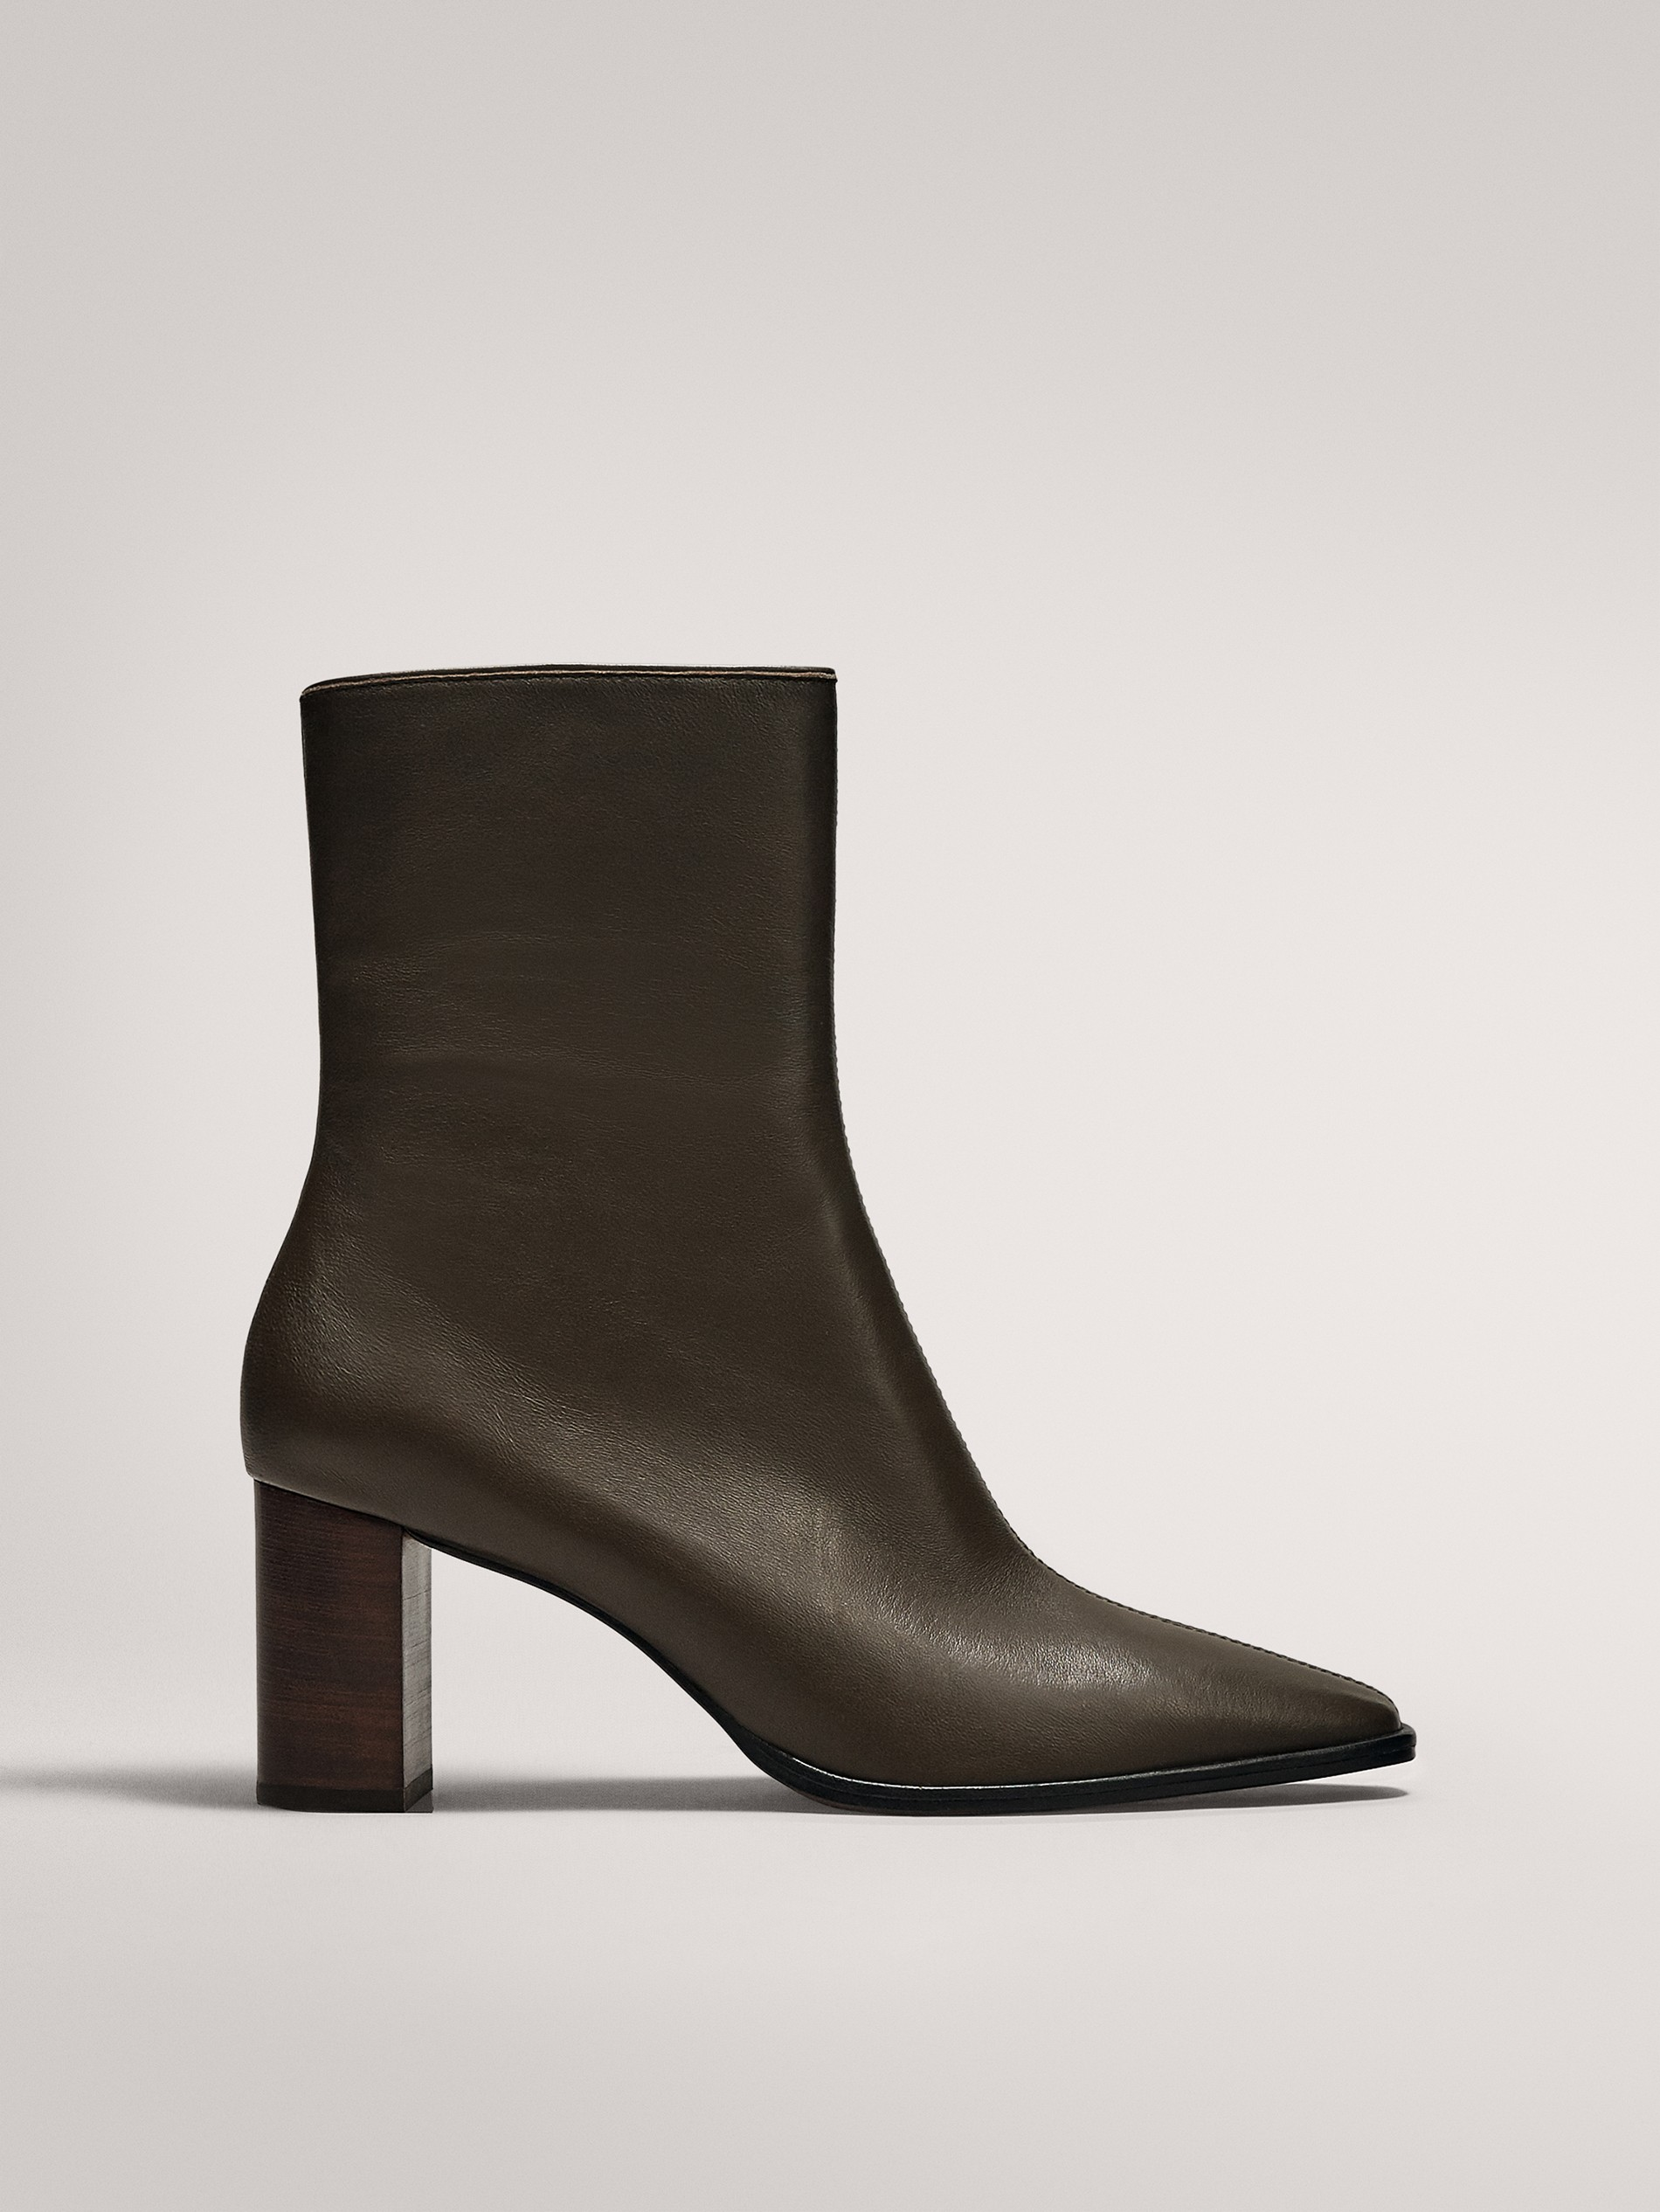 KHAKI ANKLE BOOTS WITH WOODEN HEELS